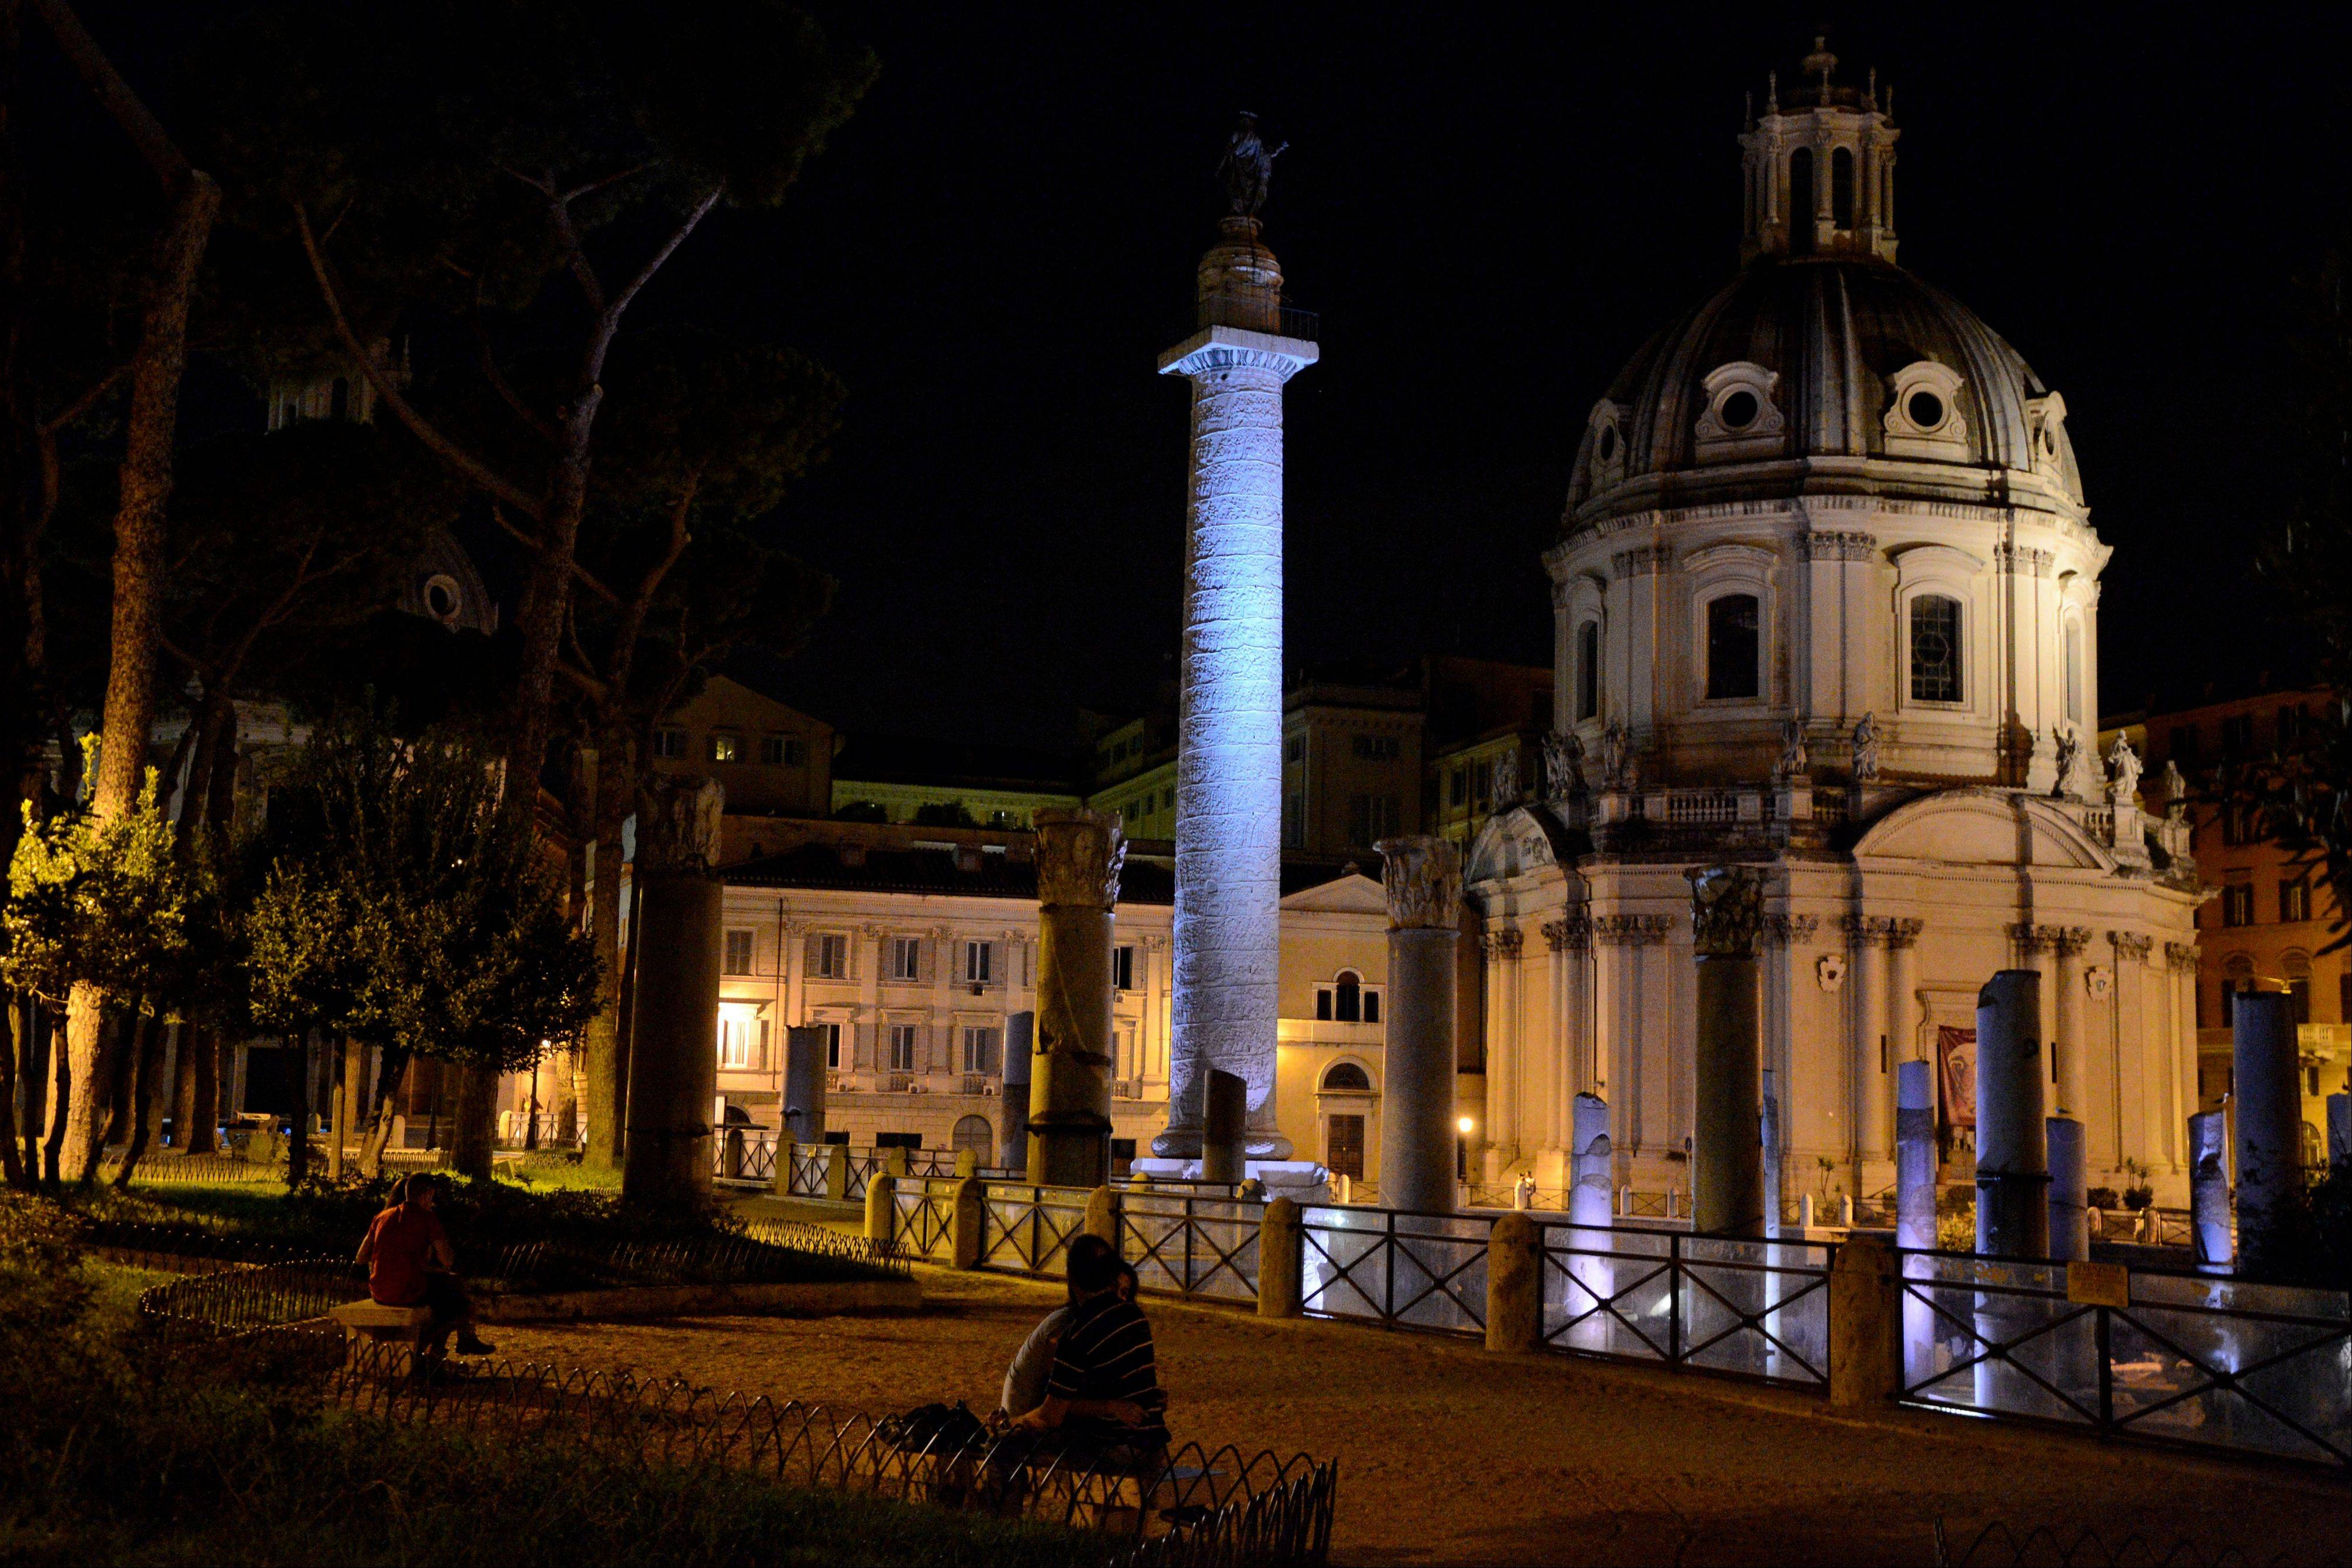 The Roman Forums by night are transformed into a romantic spot with white, blue and green beams of light coloring the ruins. The Way of the Imperial Forums, the street leading from Piazza Venezia to the Colosseum, is among the best-known places in Rome.